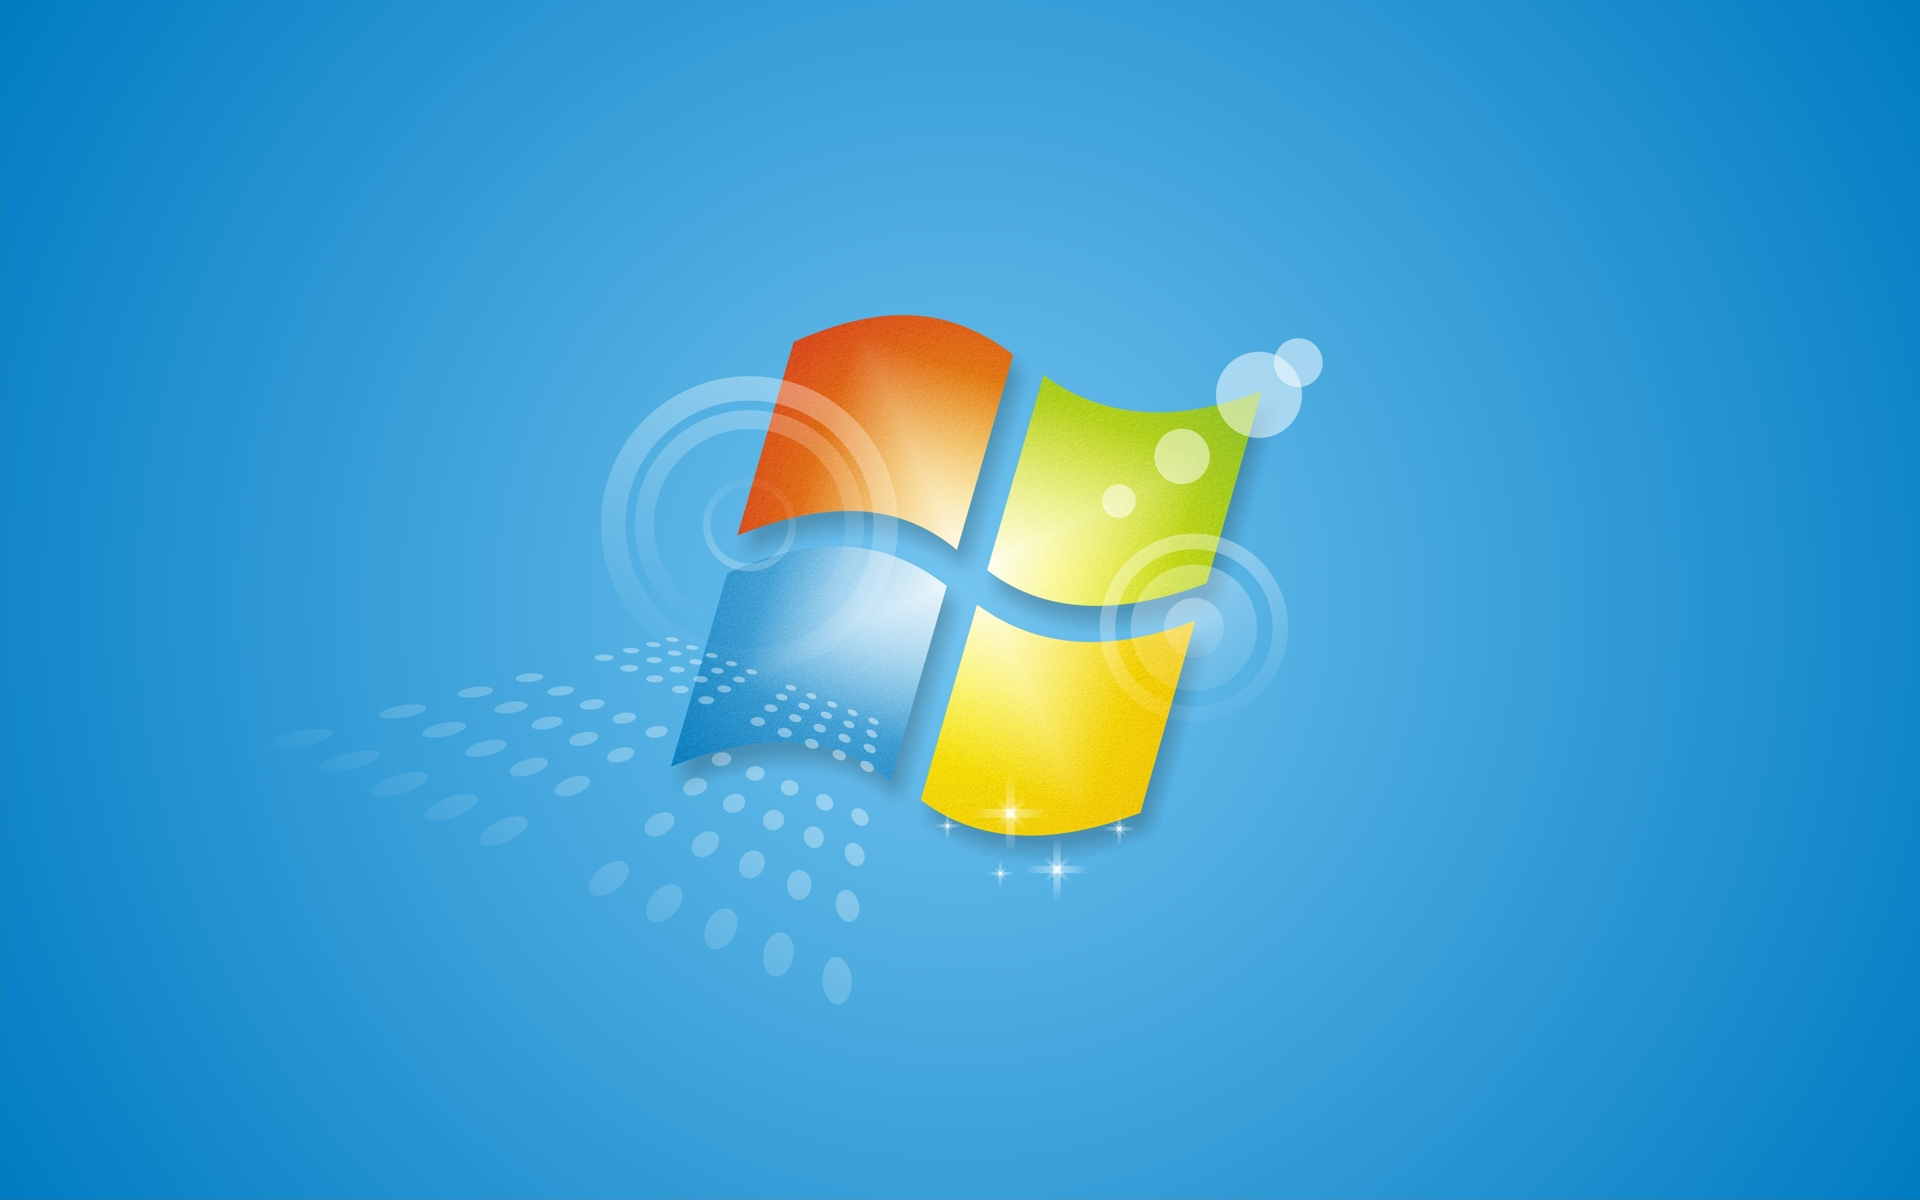 Windows 7 Alternate Blue